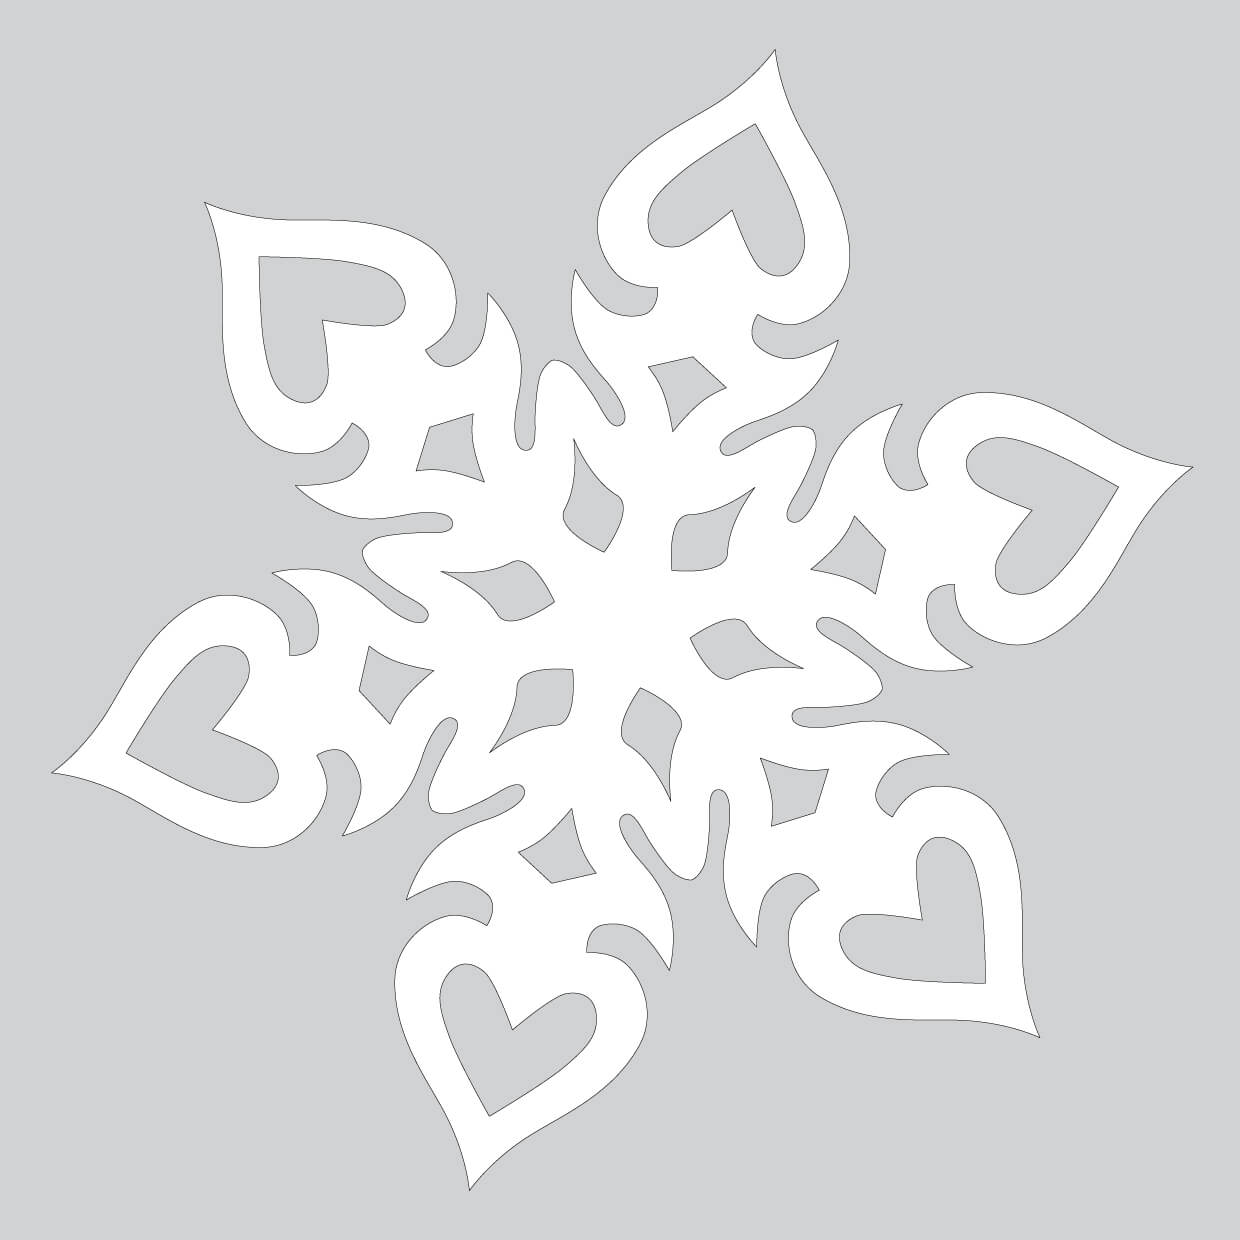 Heart Shaped Paper Snowflake Pattern To Cut Out